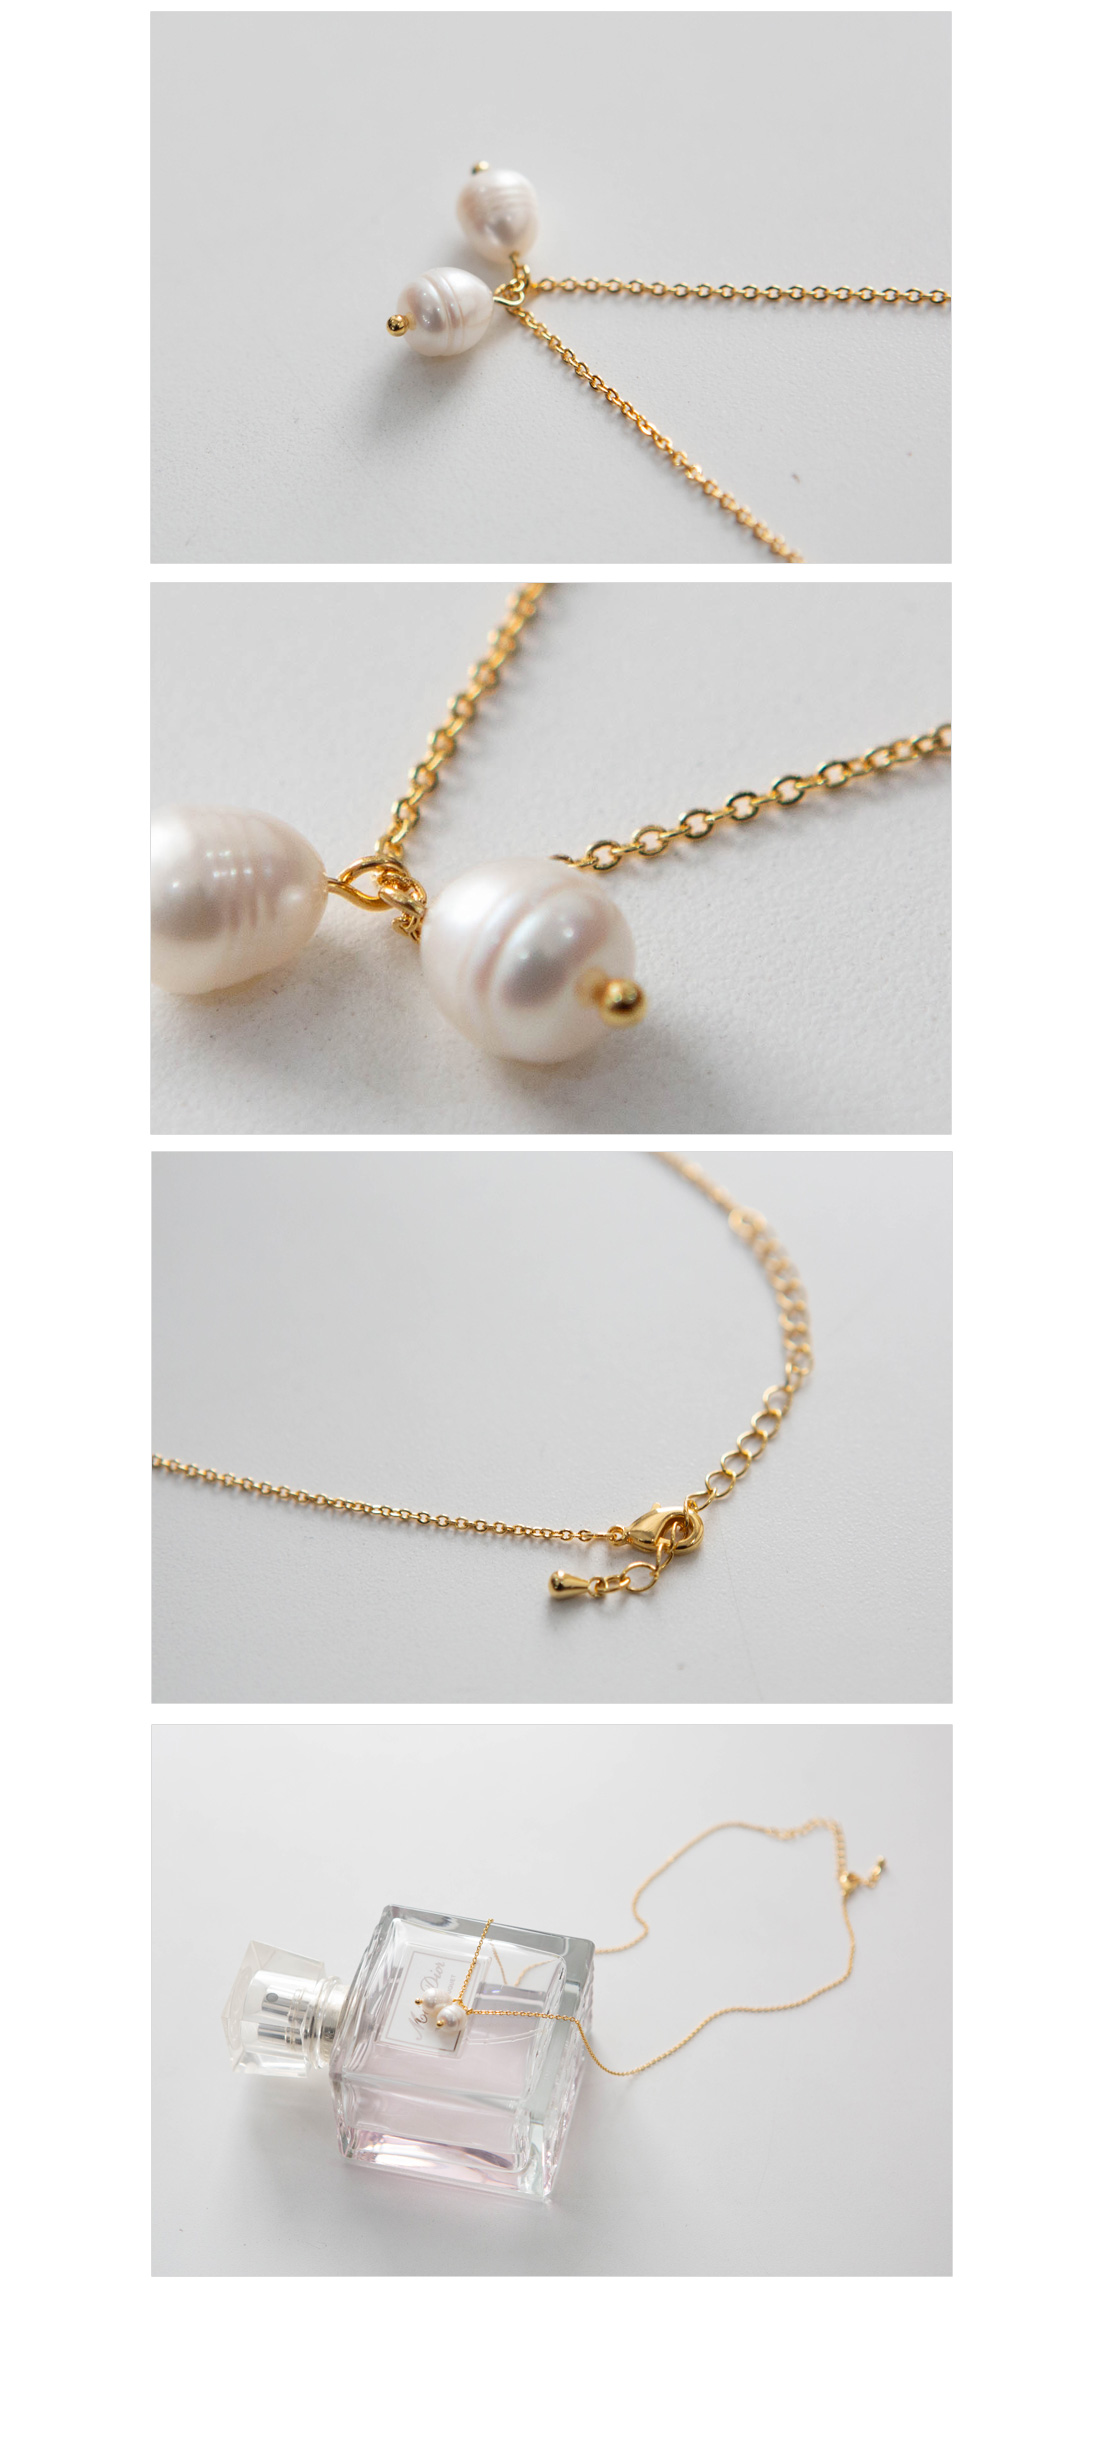 Twin pearl necklace #85893